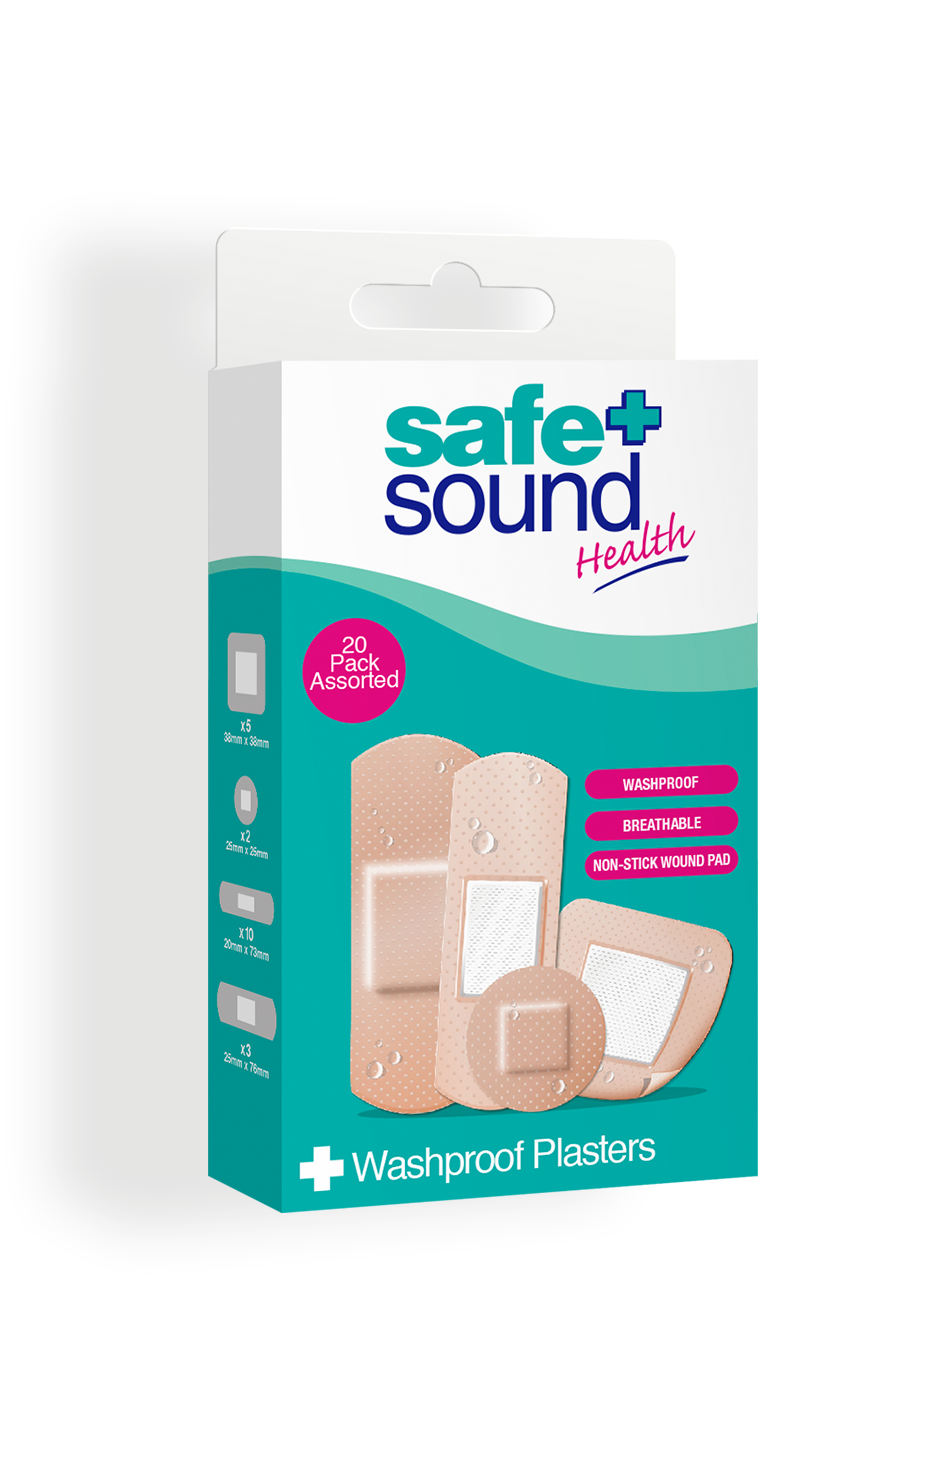 Safe and Sound Health pack of 20 Assorted Washproof Plasters